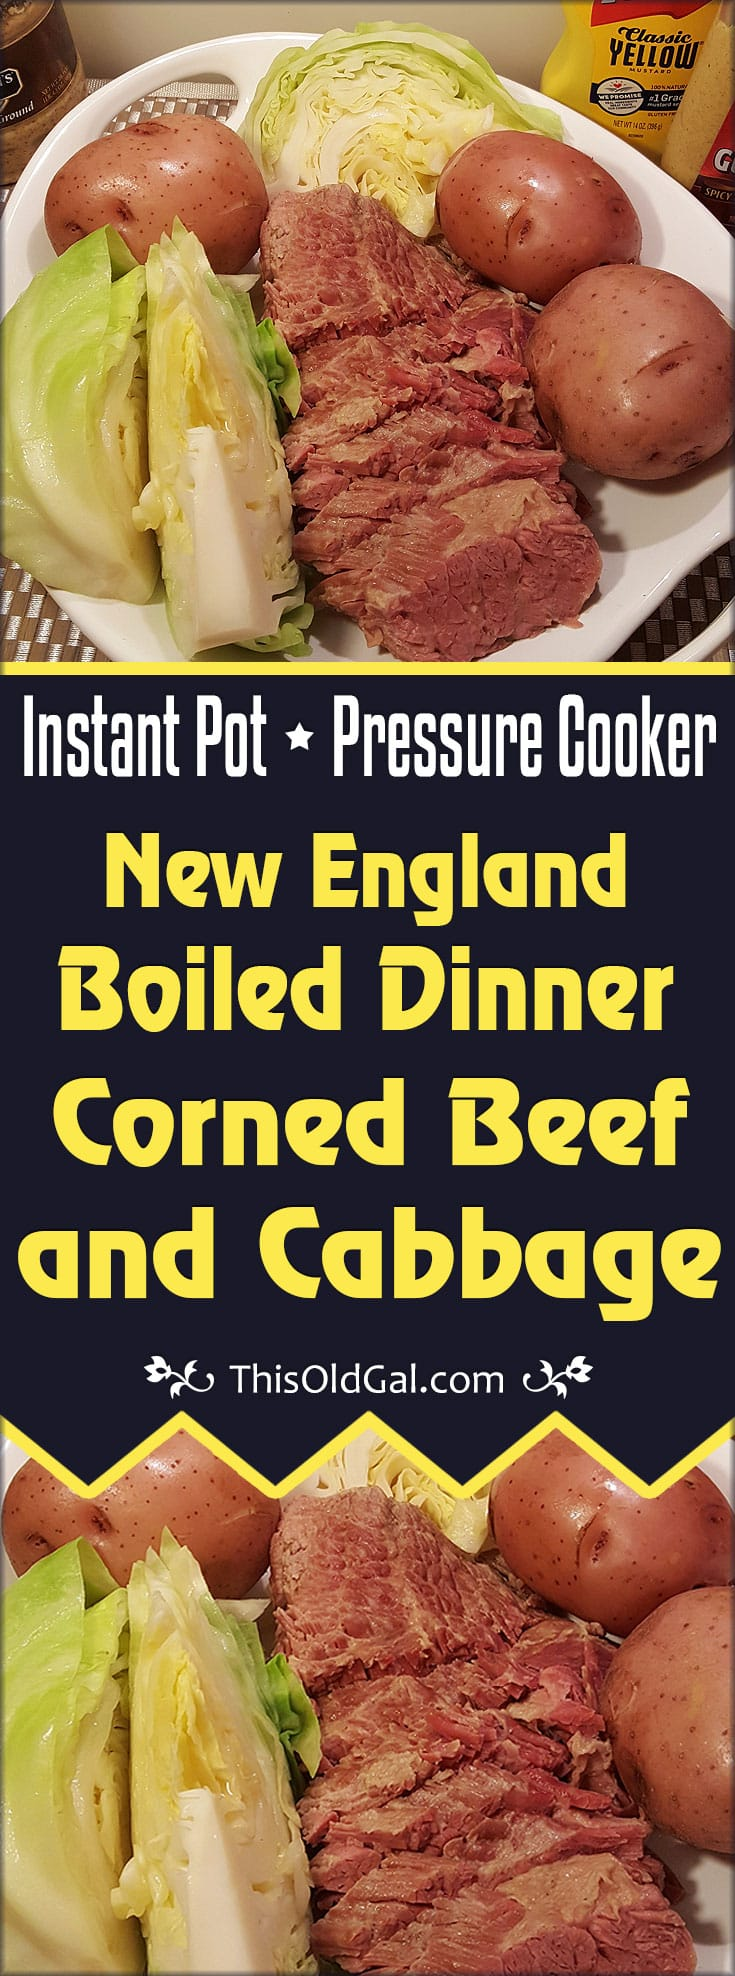 Pressure Cooker New England Boiled Dinner (Corned Beef and Cabbage)